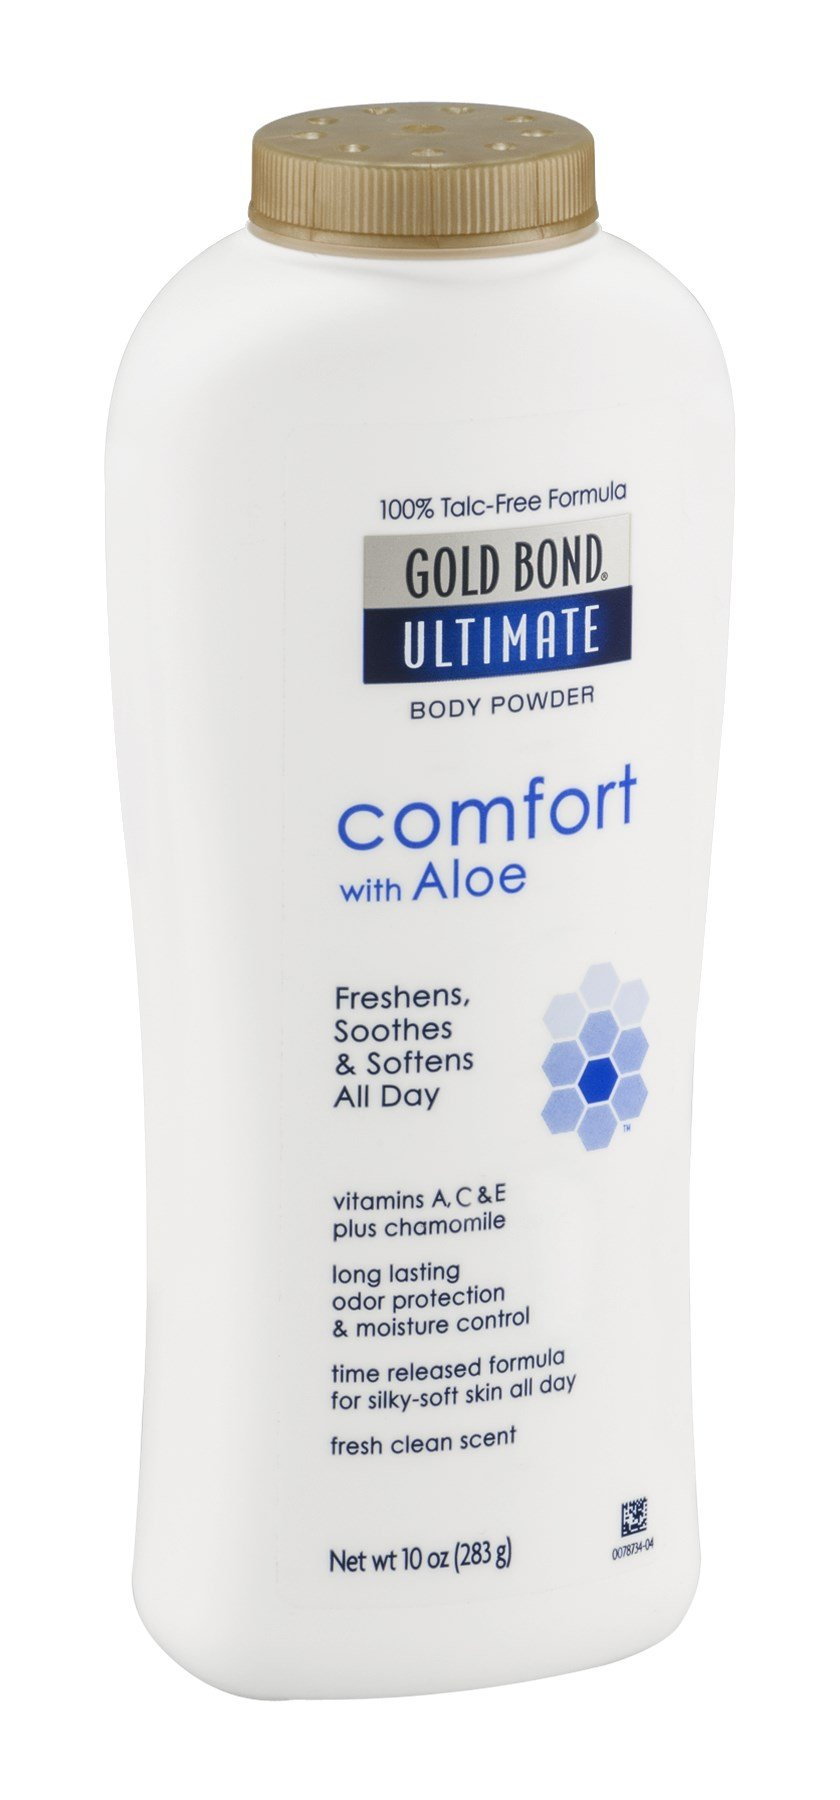 Gold Bond Ultimate Body Powder